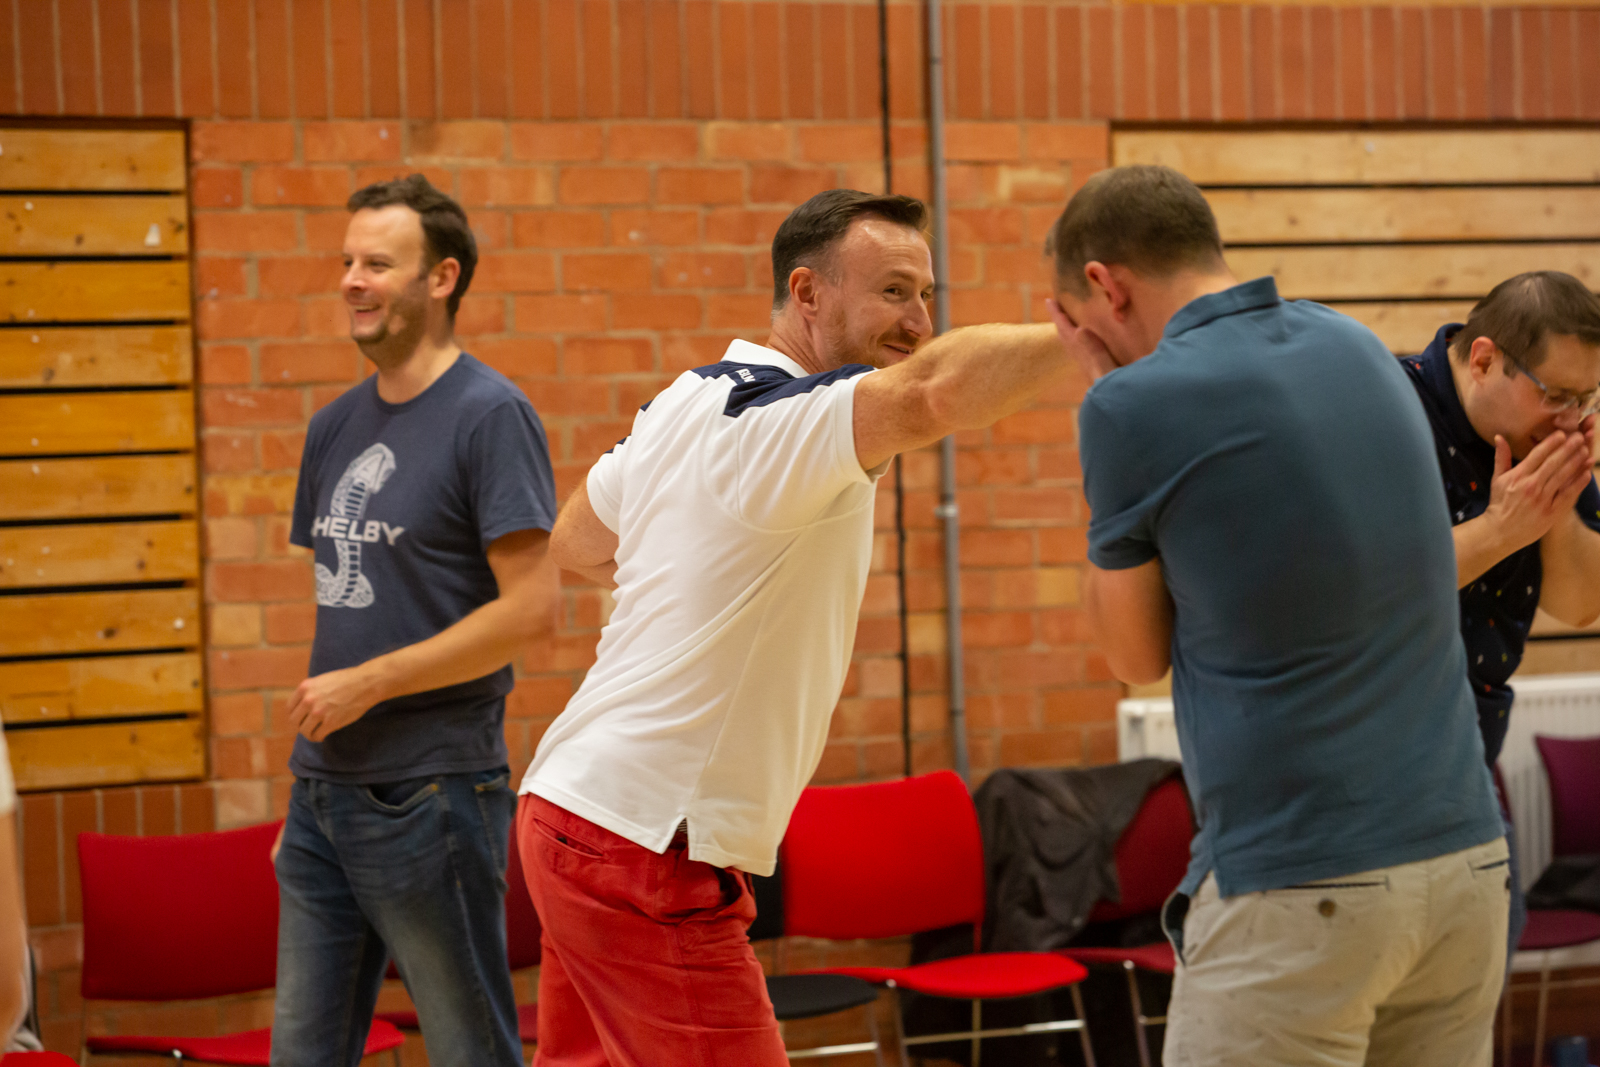 learn acting skills with our stage combat team building experience